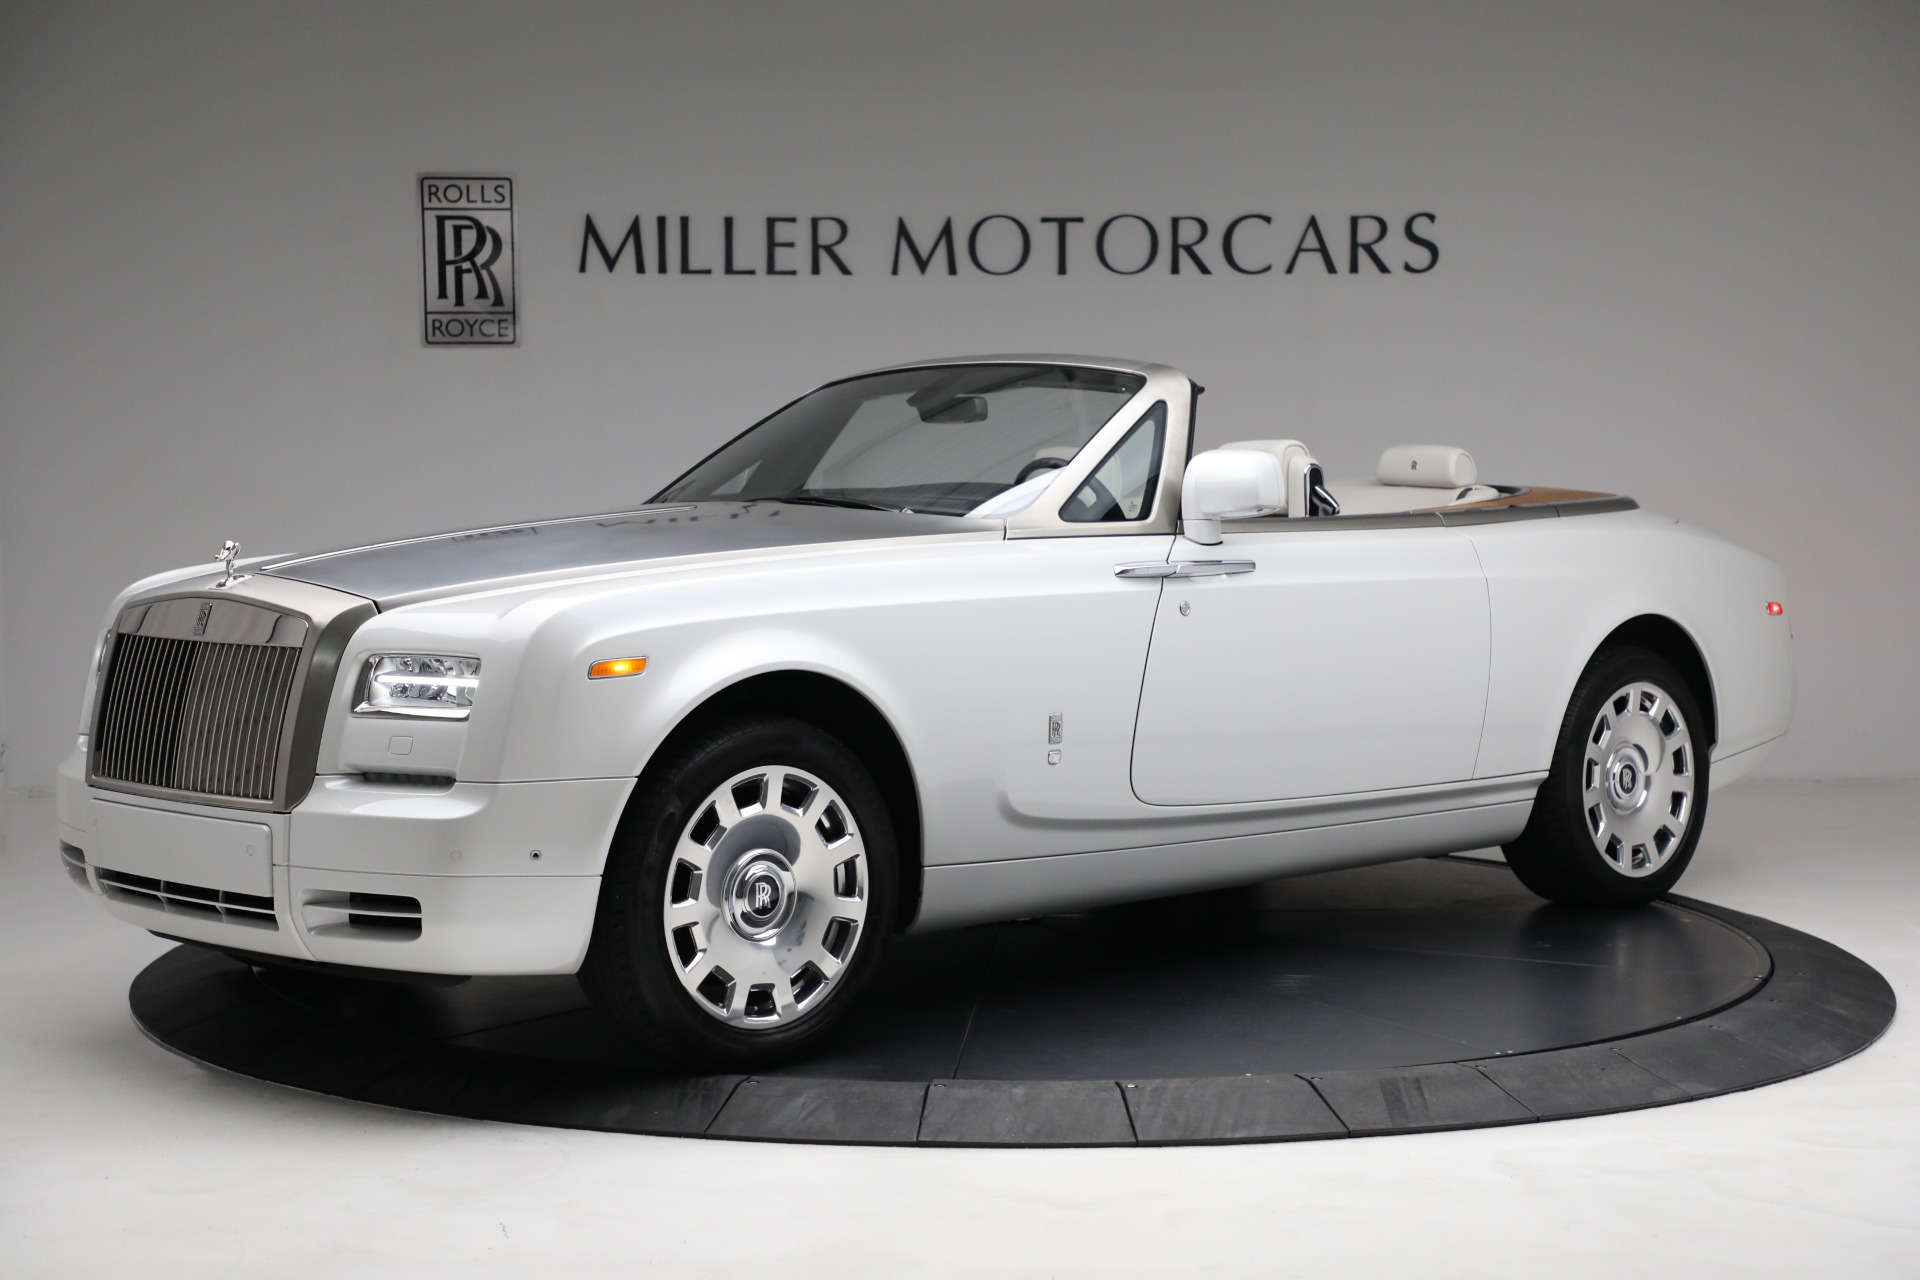 Used 2017 Rolls-Royce Phantom Drophead Coupe for sale Call for price at Rolls-Royce Motor Cars Greenwich in Greenwich CT 06830 1